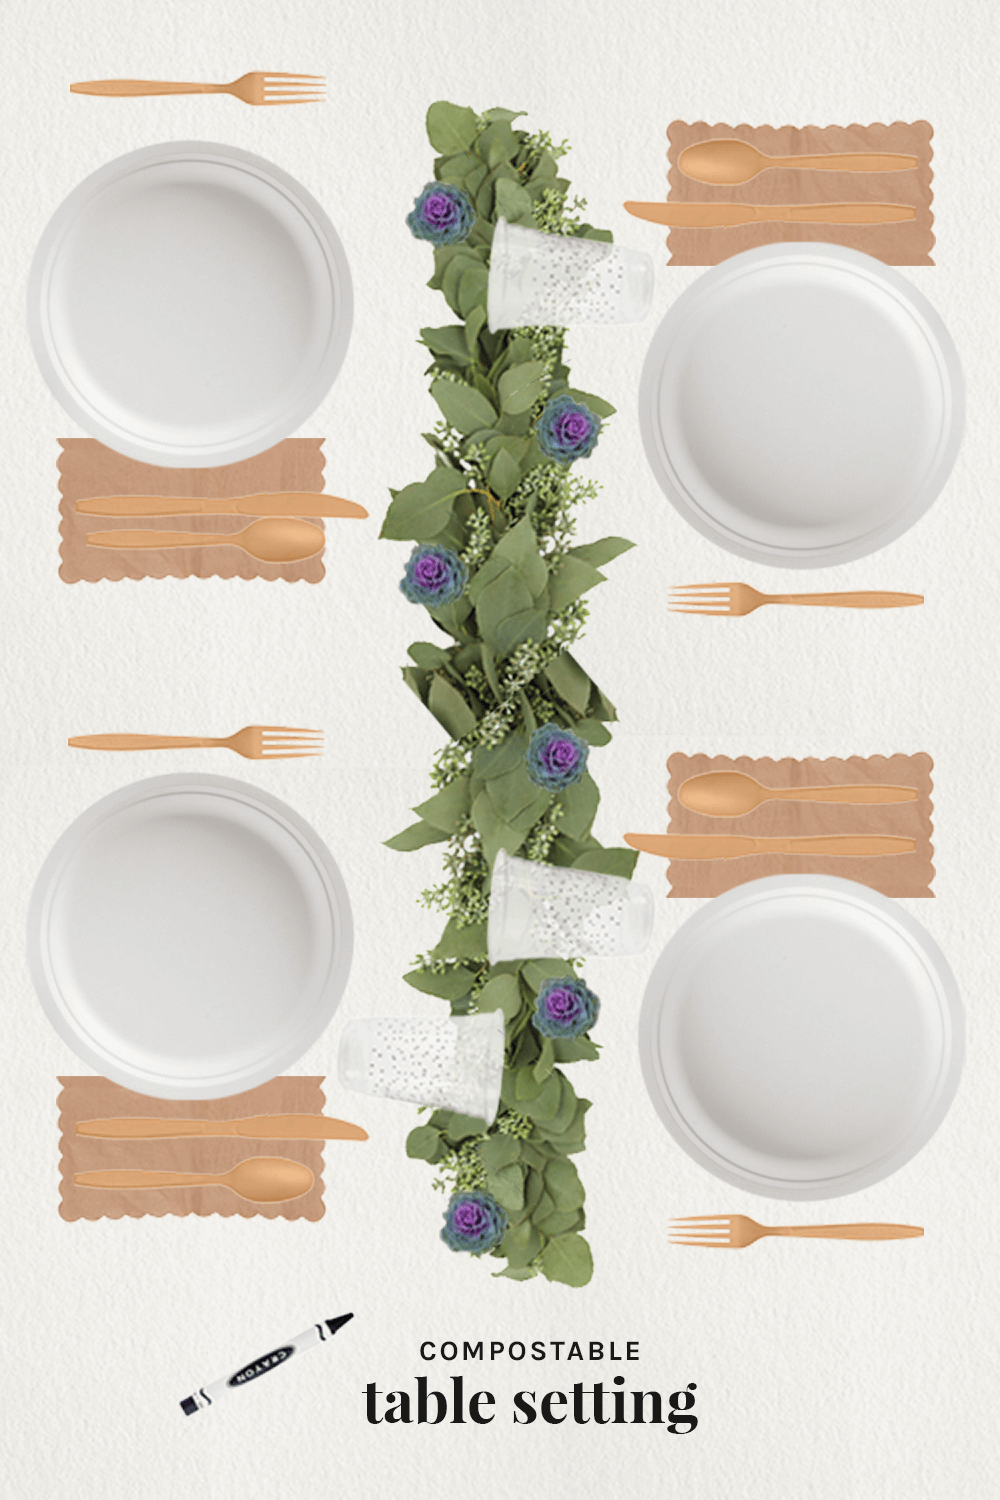 kid friendly compostable table setting